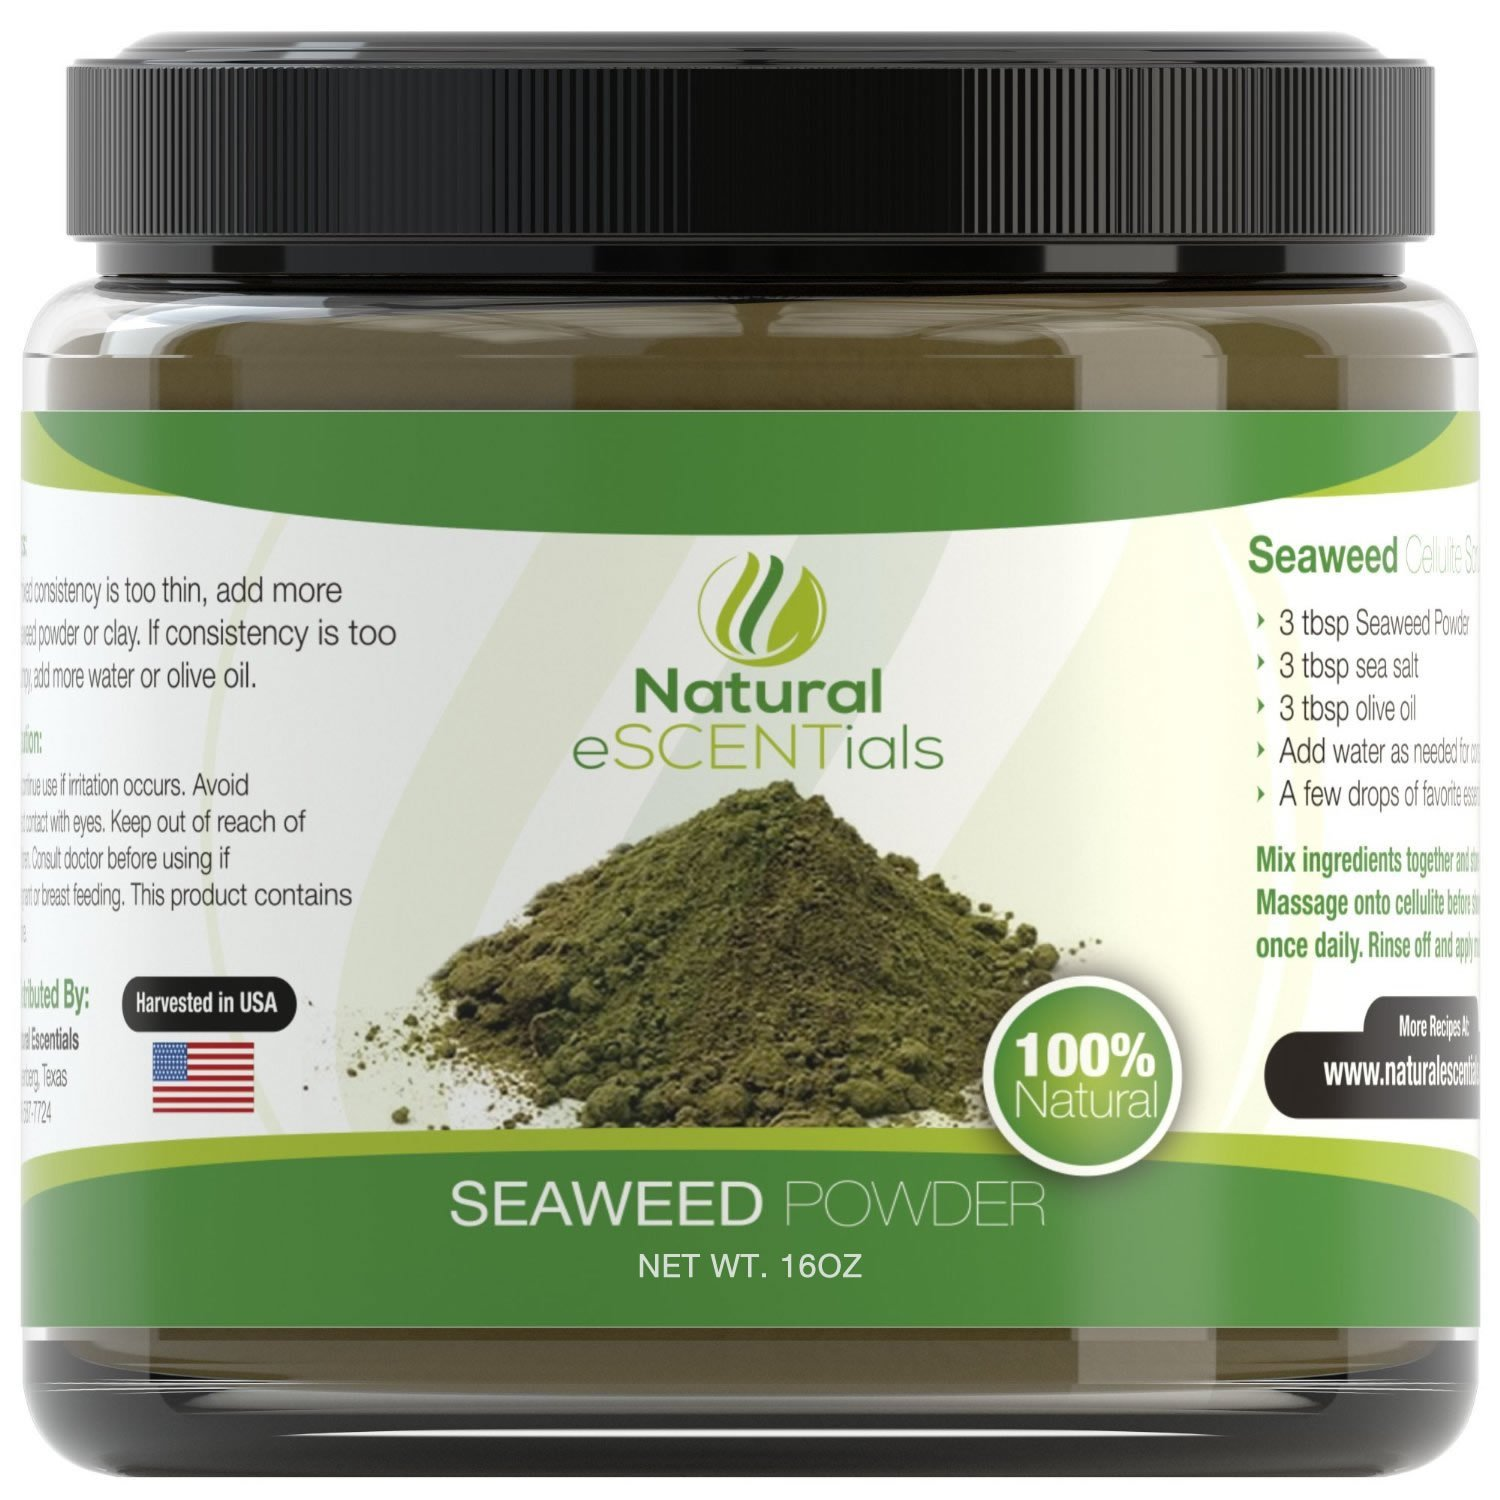 Seaweed Powder - 100% Organic Kelp Powder - Cellulite Treatment - Fresh Norwegian Ascophyllum Nodosum - FREE Recipes Included - Perfect For Body Wraps, Scrubs, Facials - 1lb